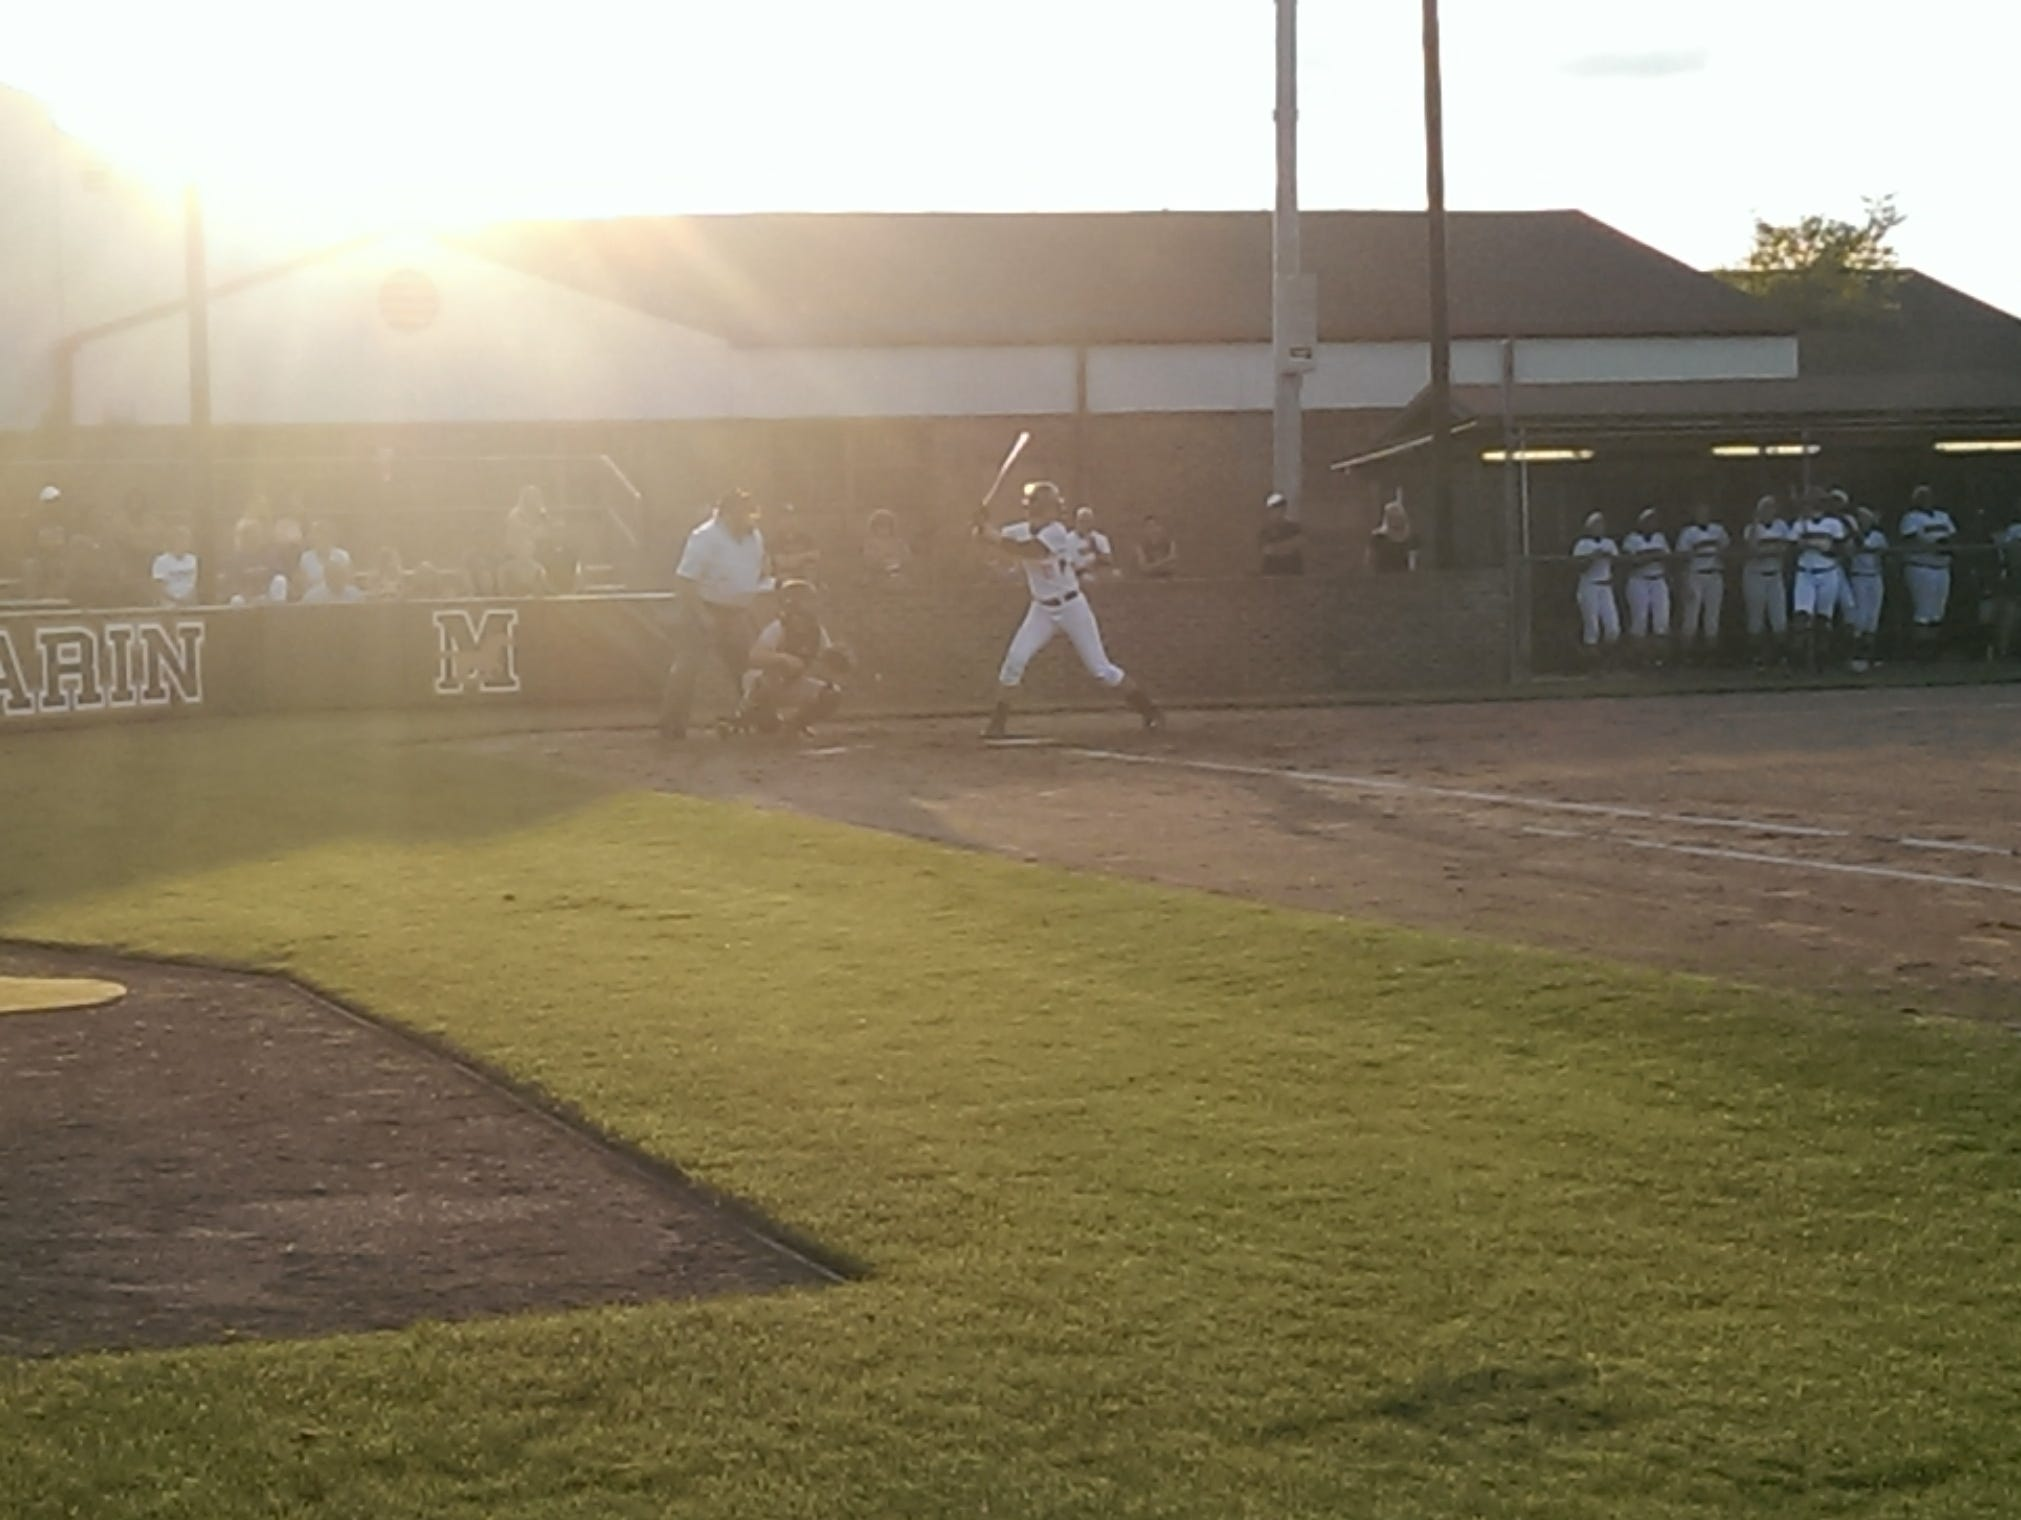 Kendall Reid takes her turn at bat during a recent playoff game.